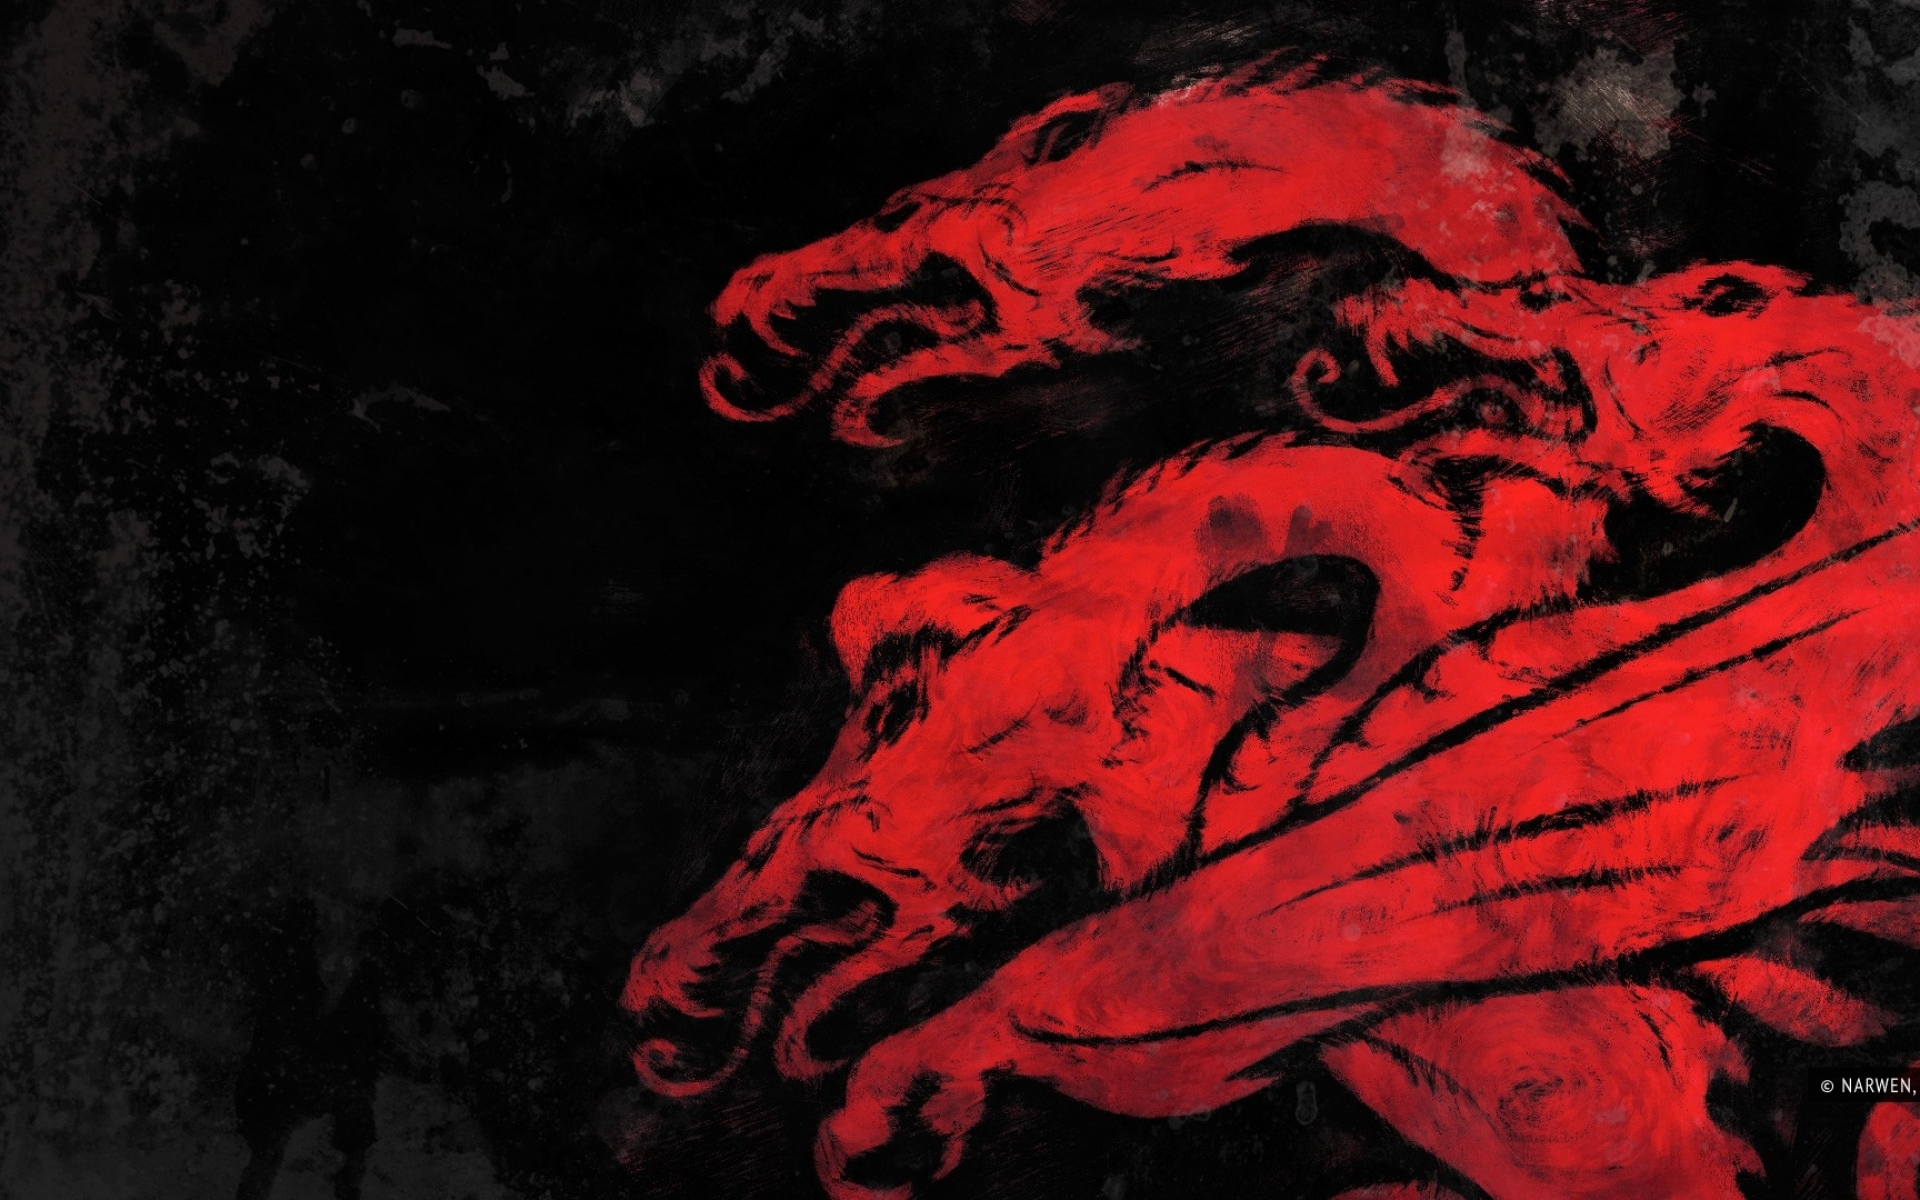 Cool Wallpaper High Quality Gaming - game-of-thrones-movie-wallpaper_092226  Trends_882955.jpg